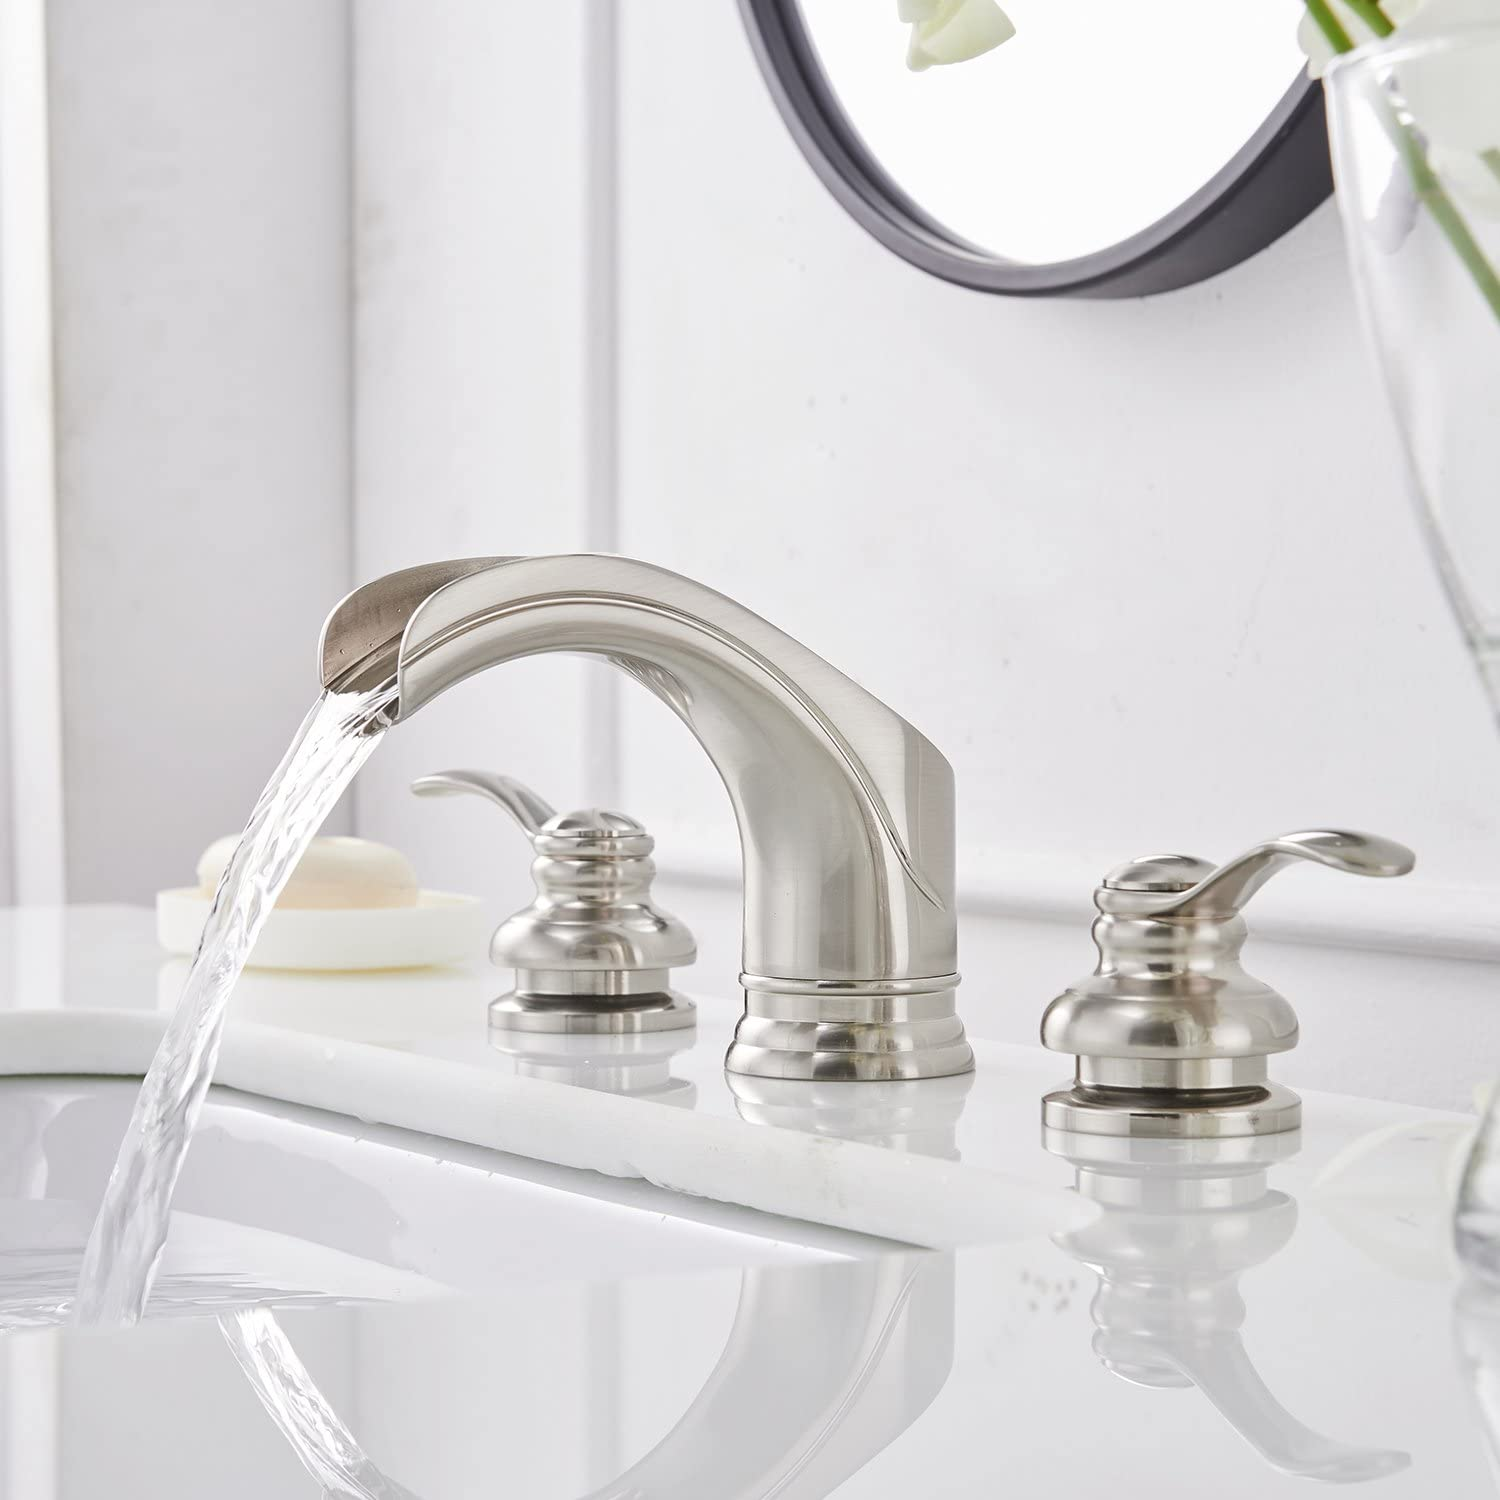 Greenspring Commercial Waterfall 8-16 Inch 3 Holes Two Handle Widespread Brushed Nickel Bathroom Sink Faucet